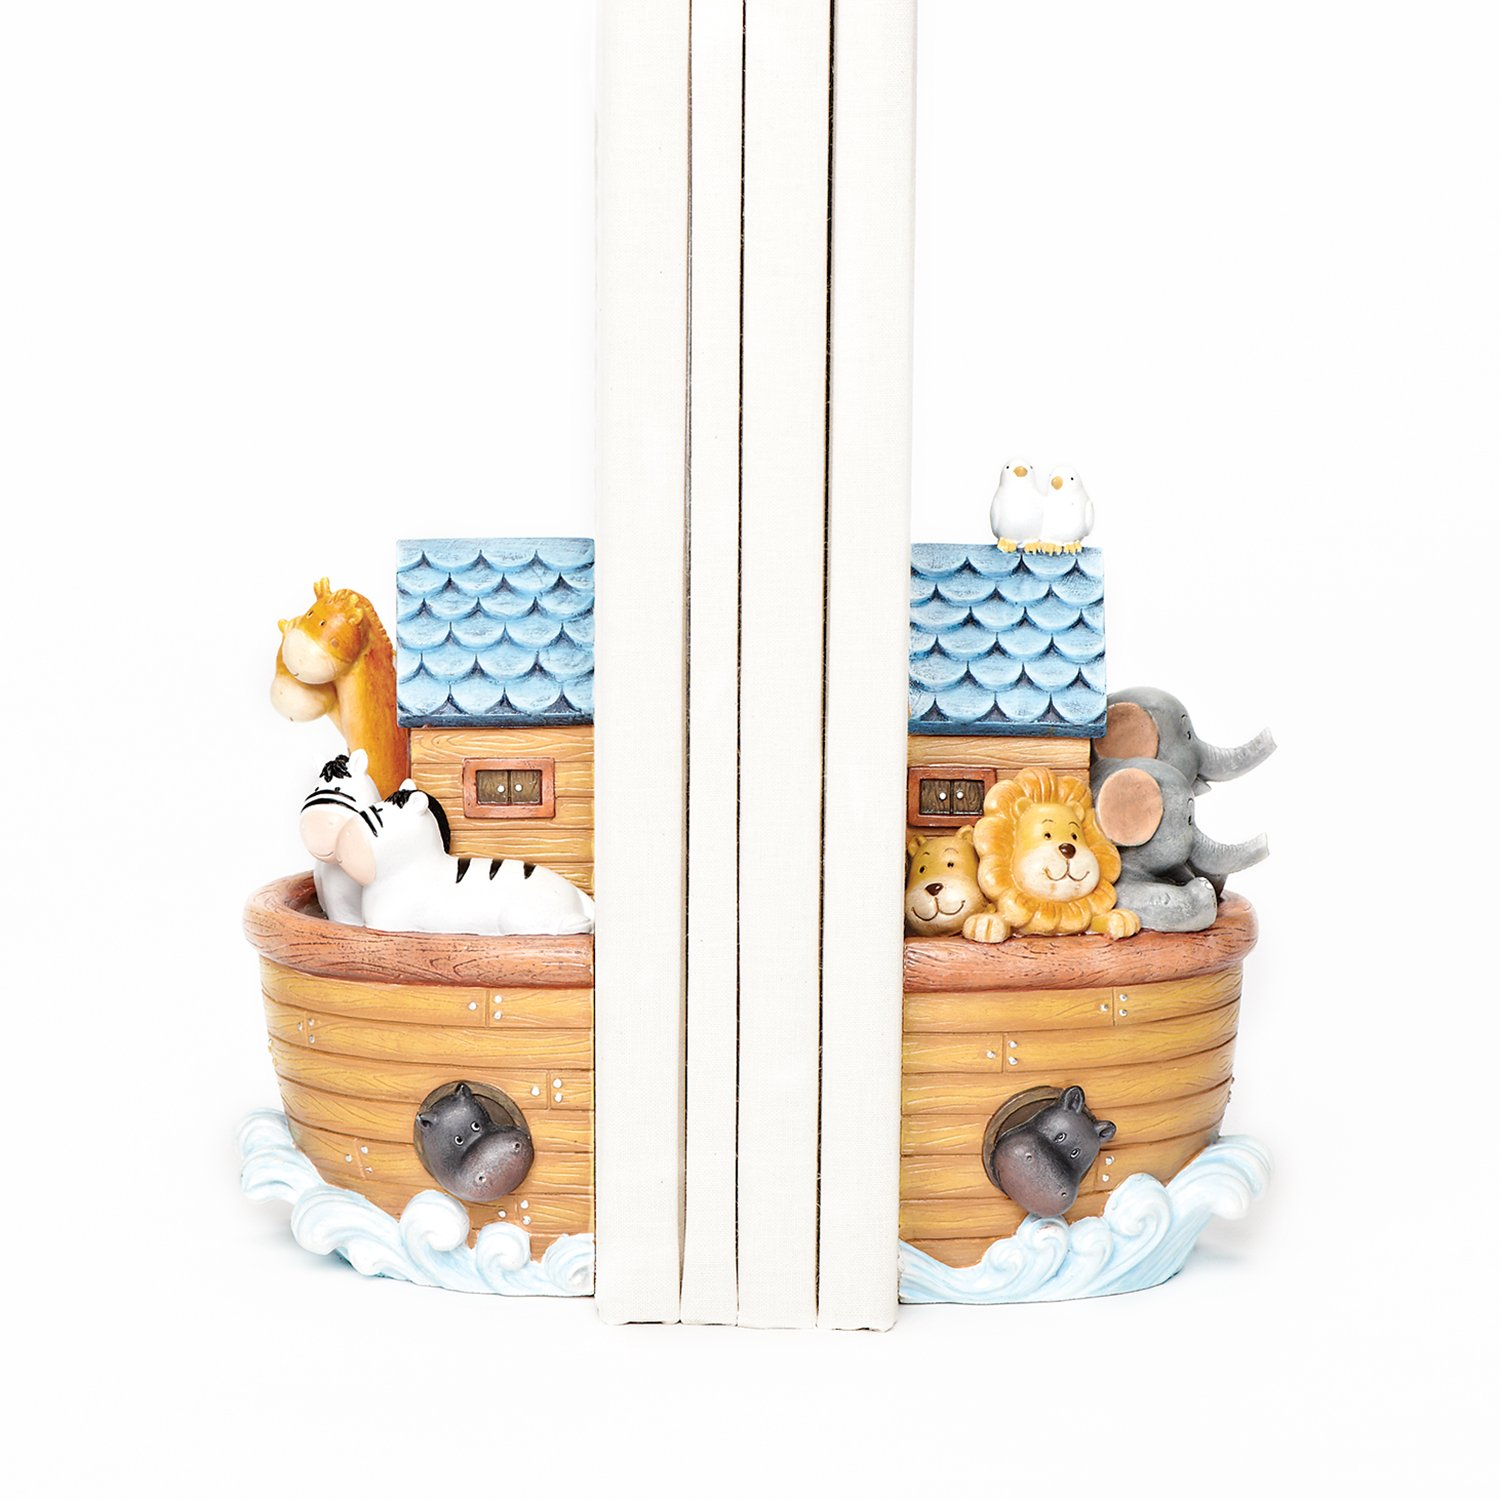 Roman Exclusive ''Noah's Ark'' Bookends Showing All The Animals on Board The Ark, 6.5-Inch Tall, Set of 2